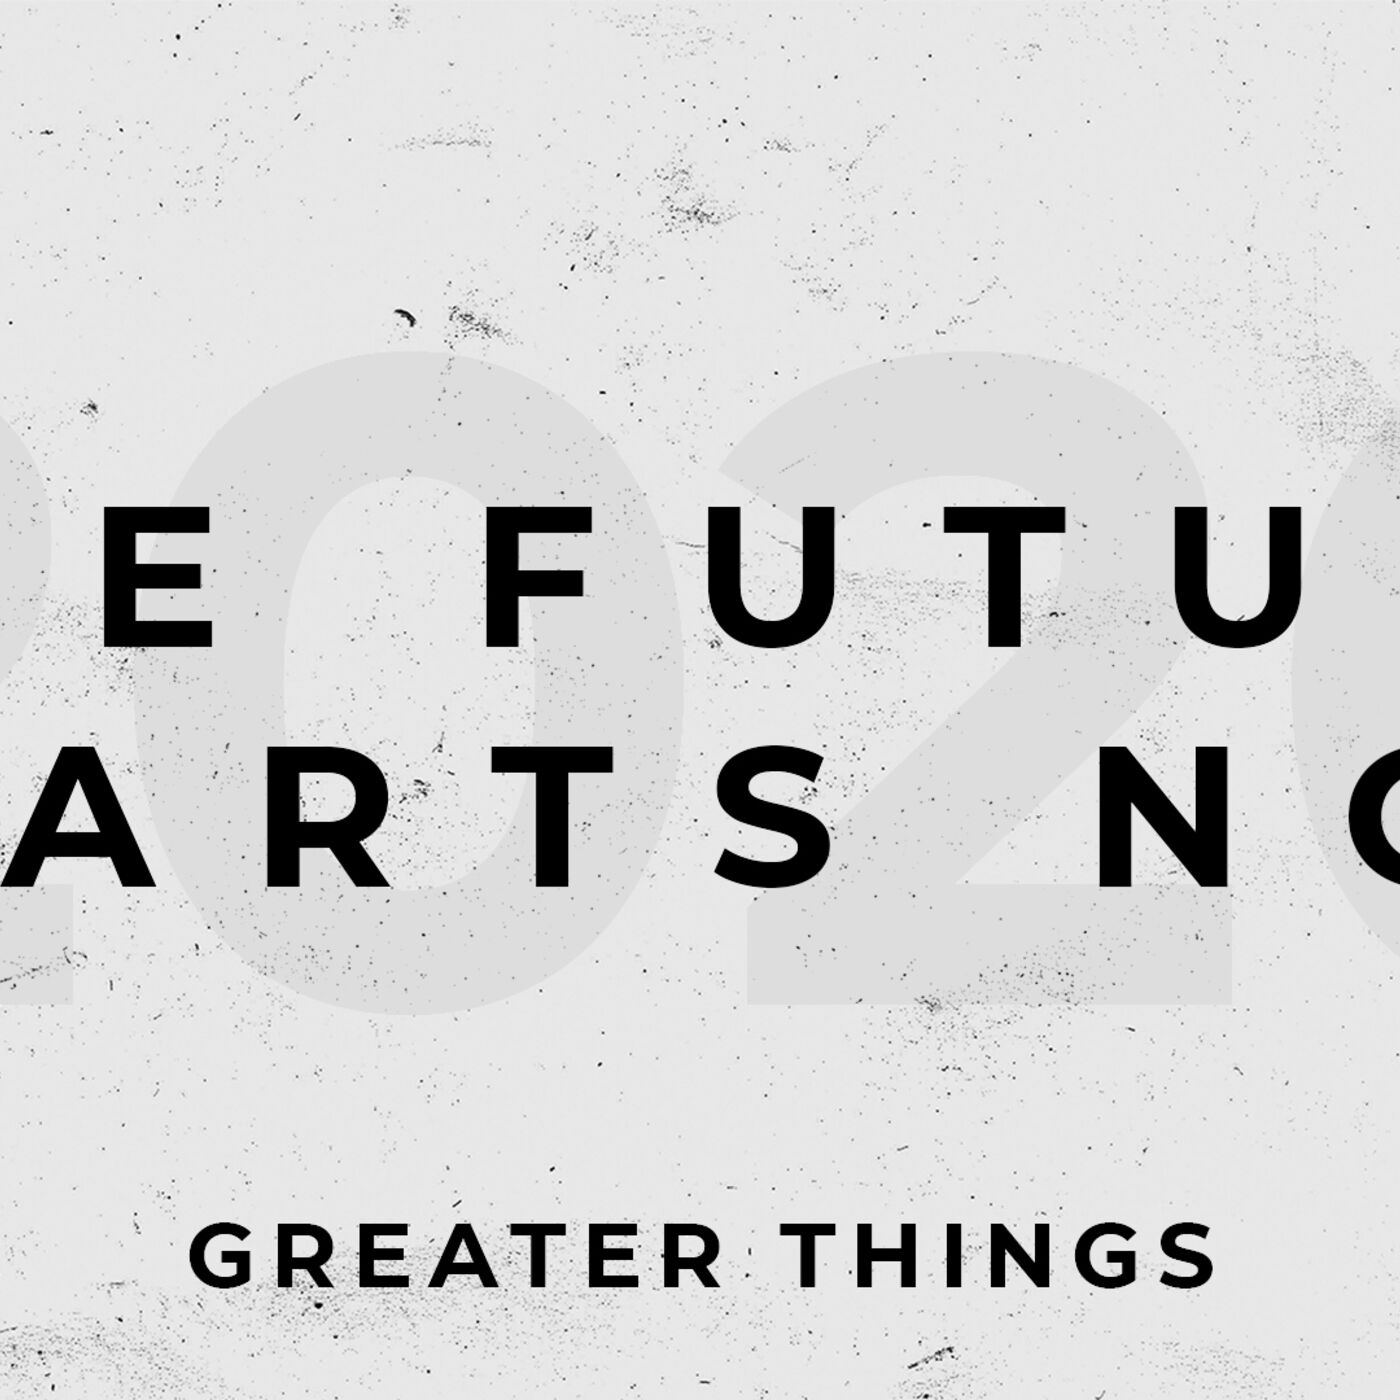 Greater Things - The Future Starts Now (Part 3)